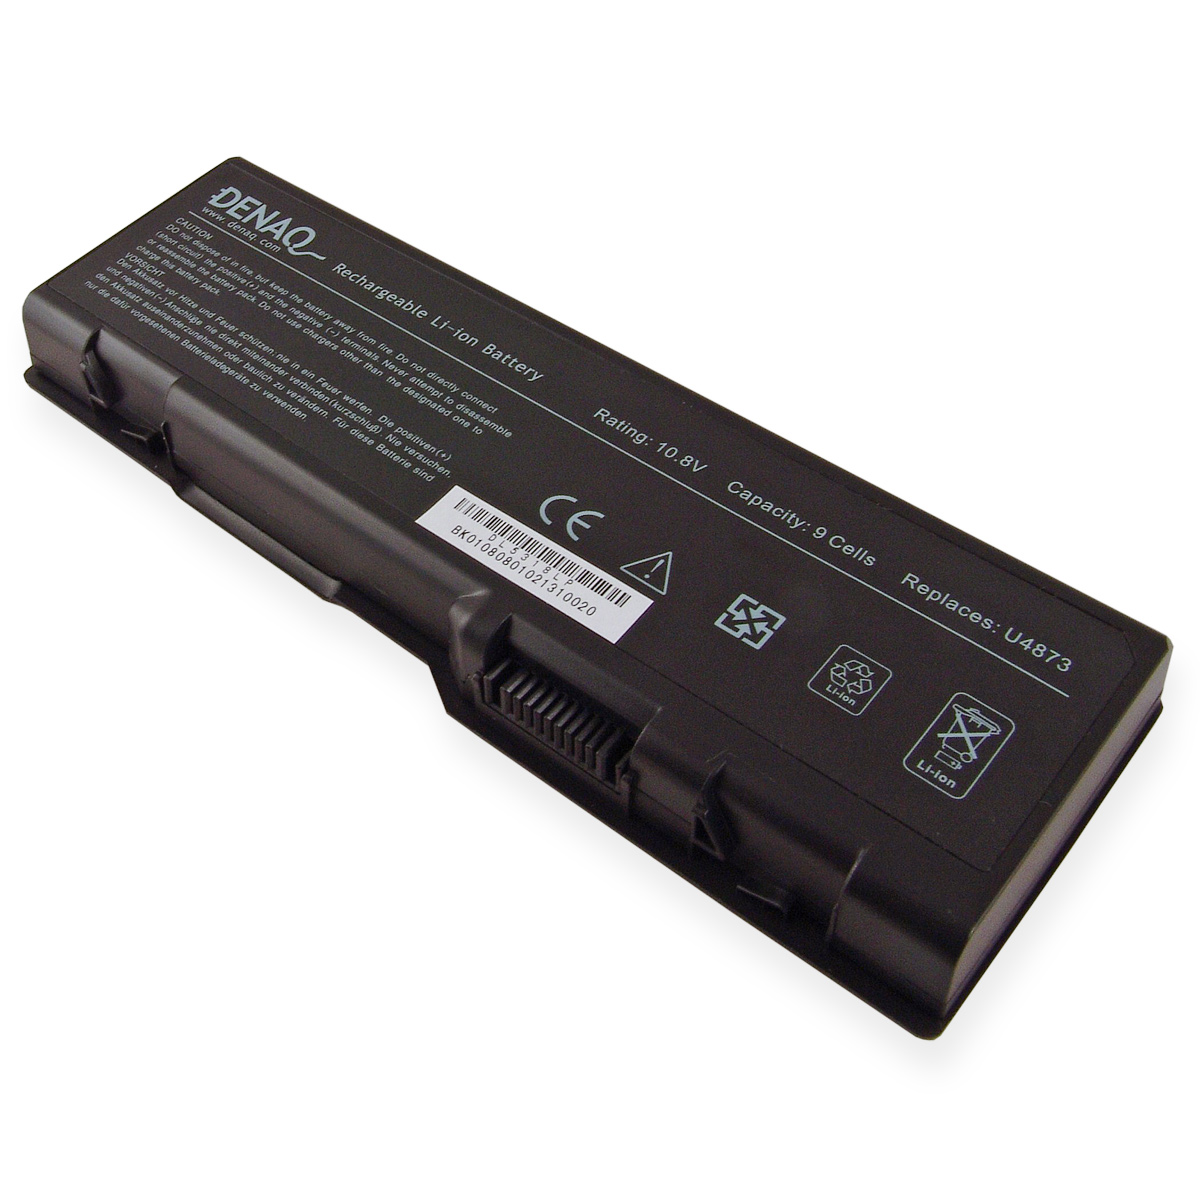 Denaq DENAQ 9-Cell 7800mAh Li-Ion Laptop Battery for DELL Inspiron 6000, 9200, 9300, 9400, E1705, XPS GEN 2; DELL Precision M6300, M90; DELL XPS M170, M1710